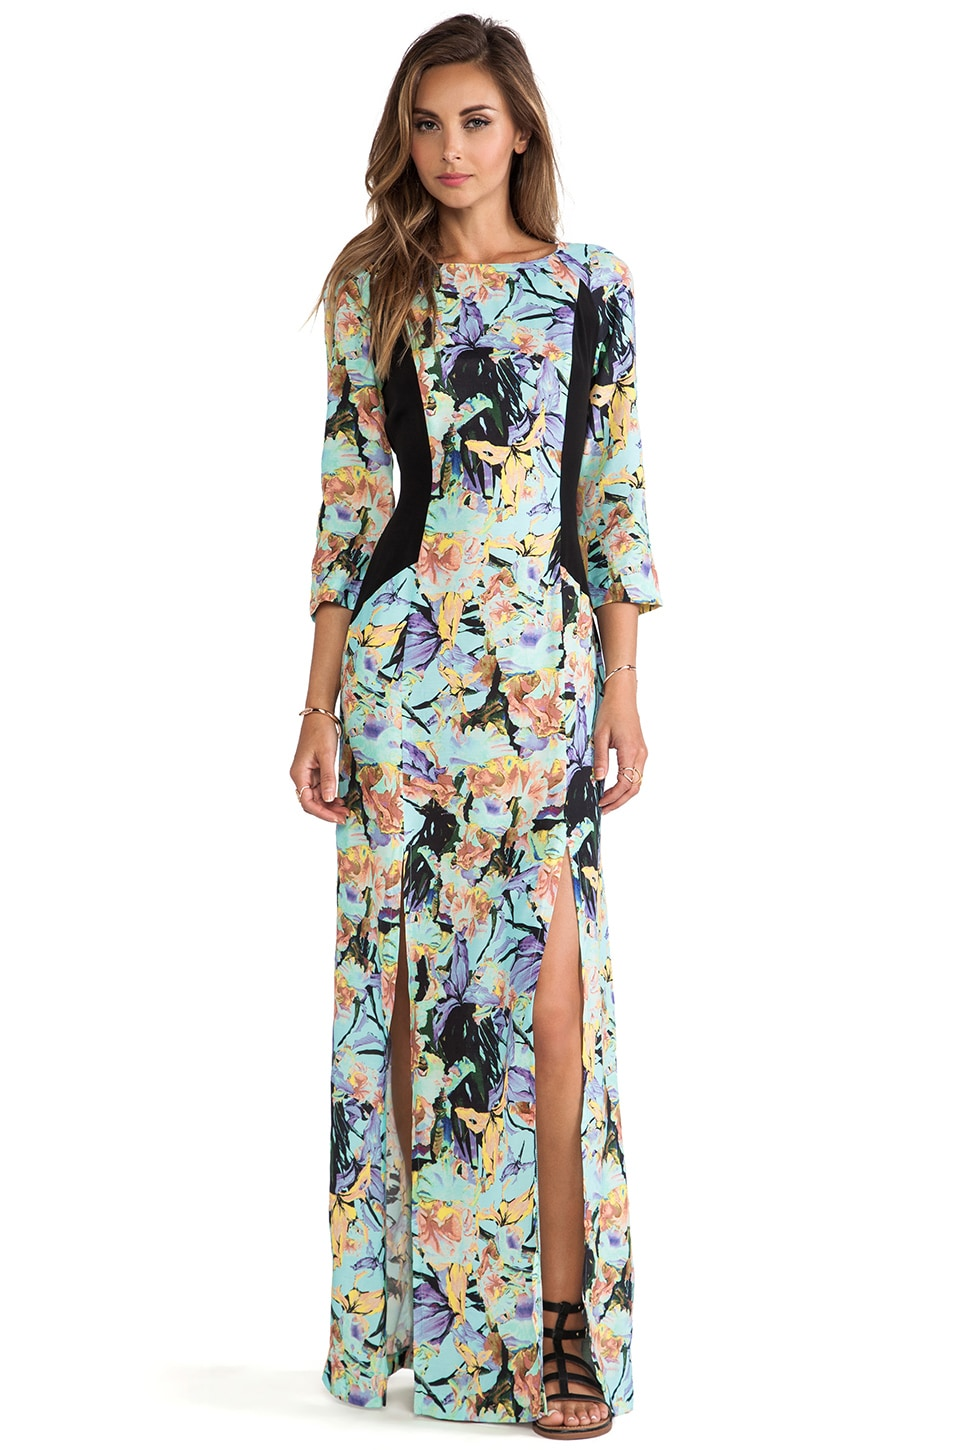 SUBOO Delphinium Maxi Dress in Black